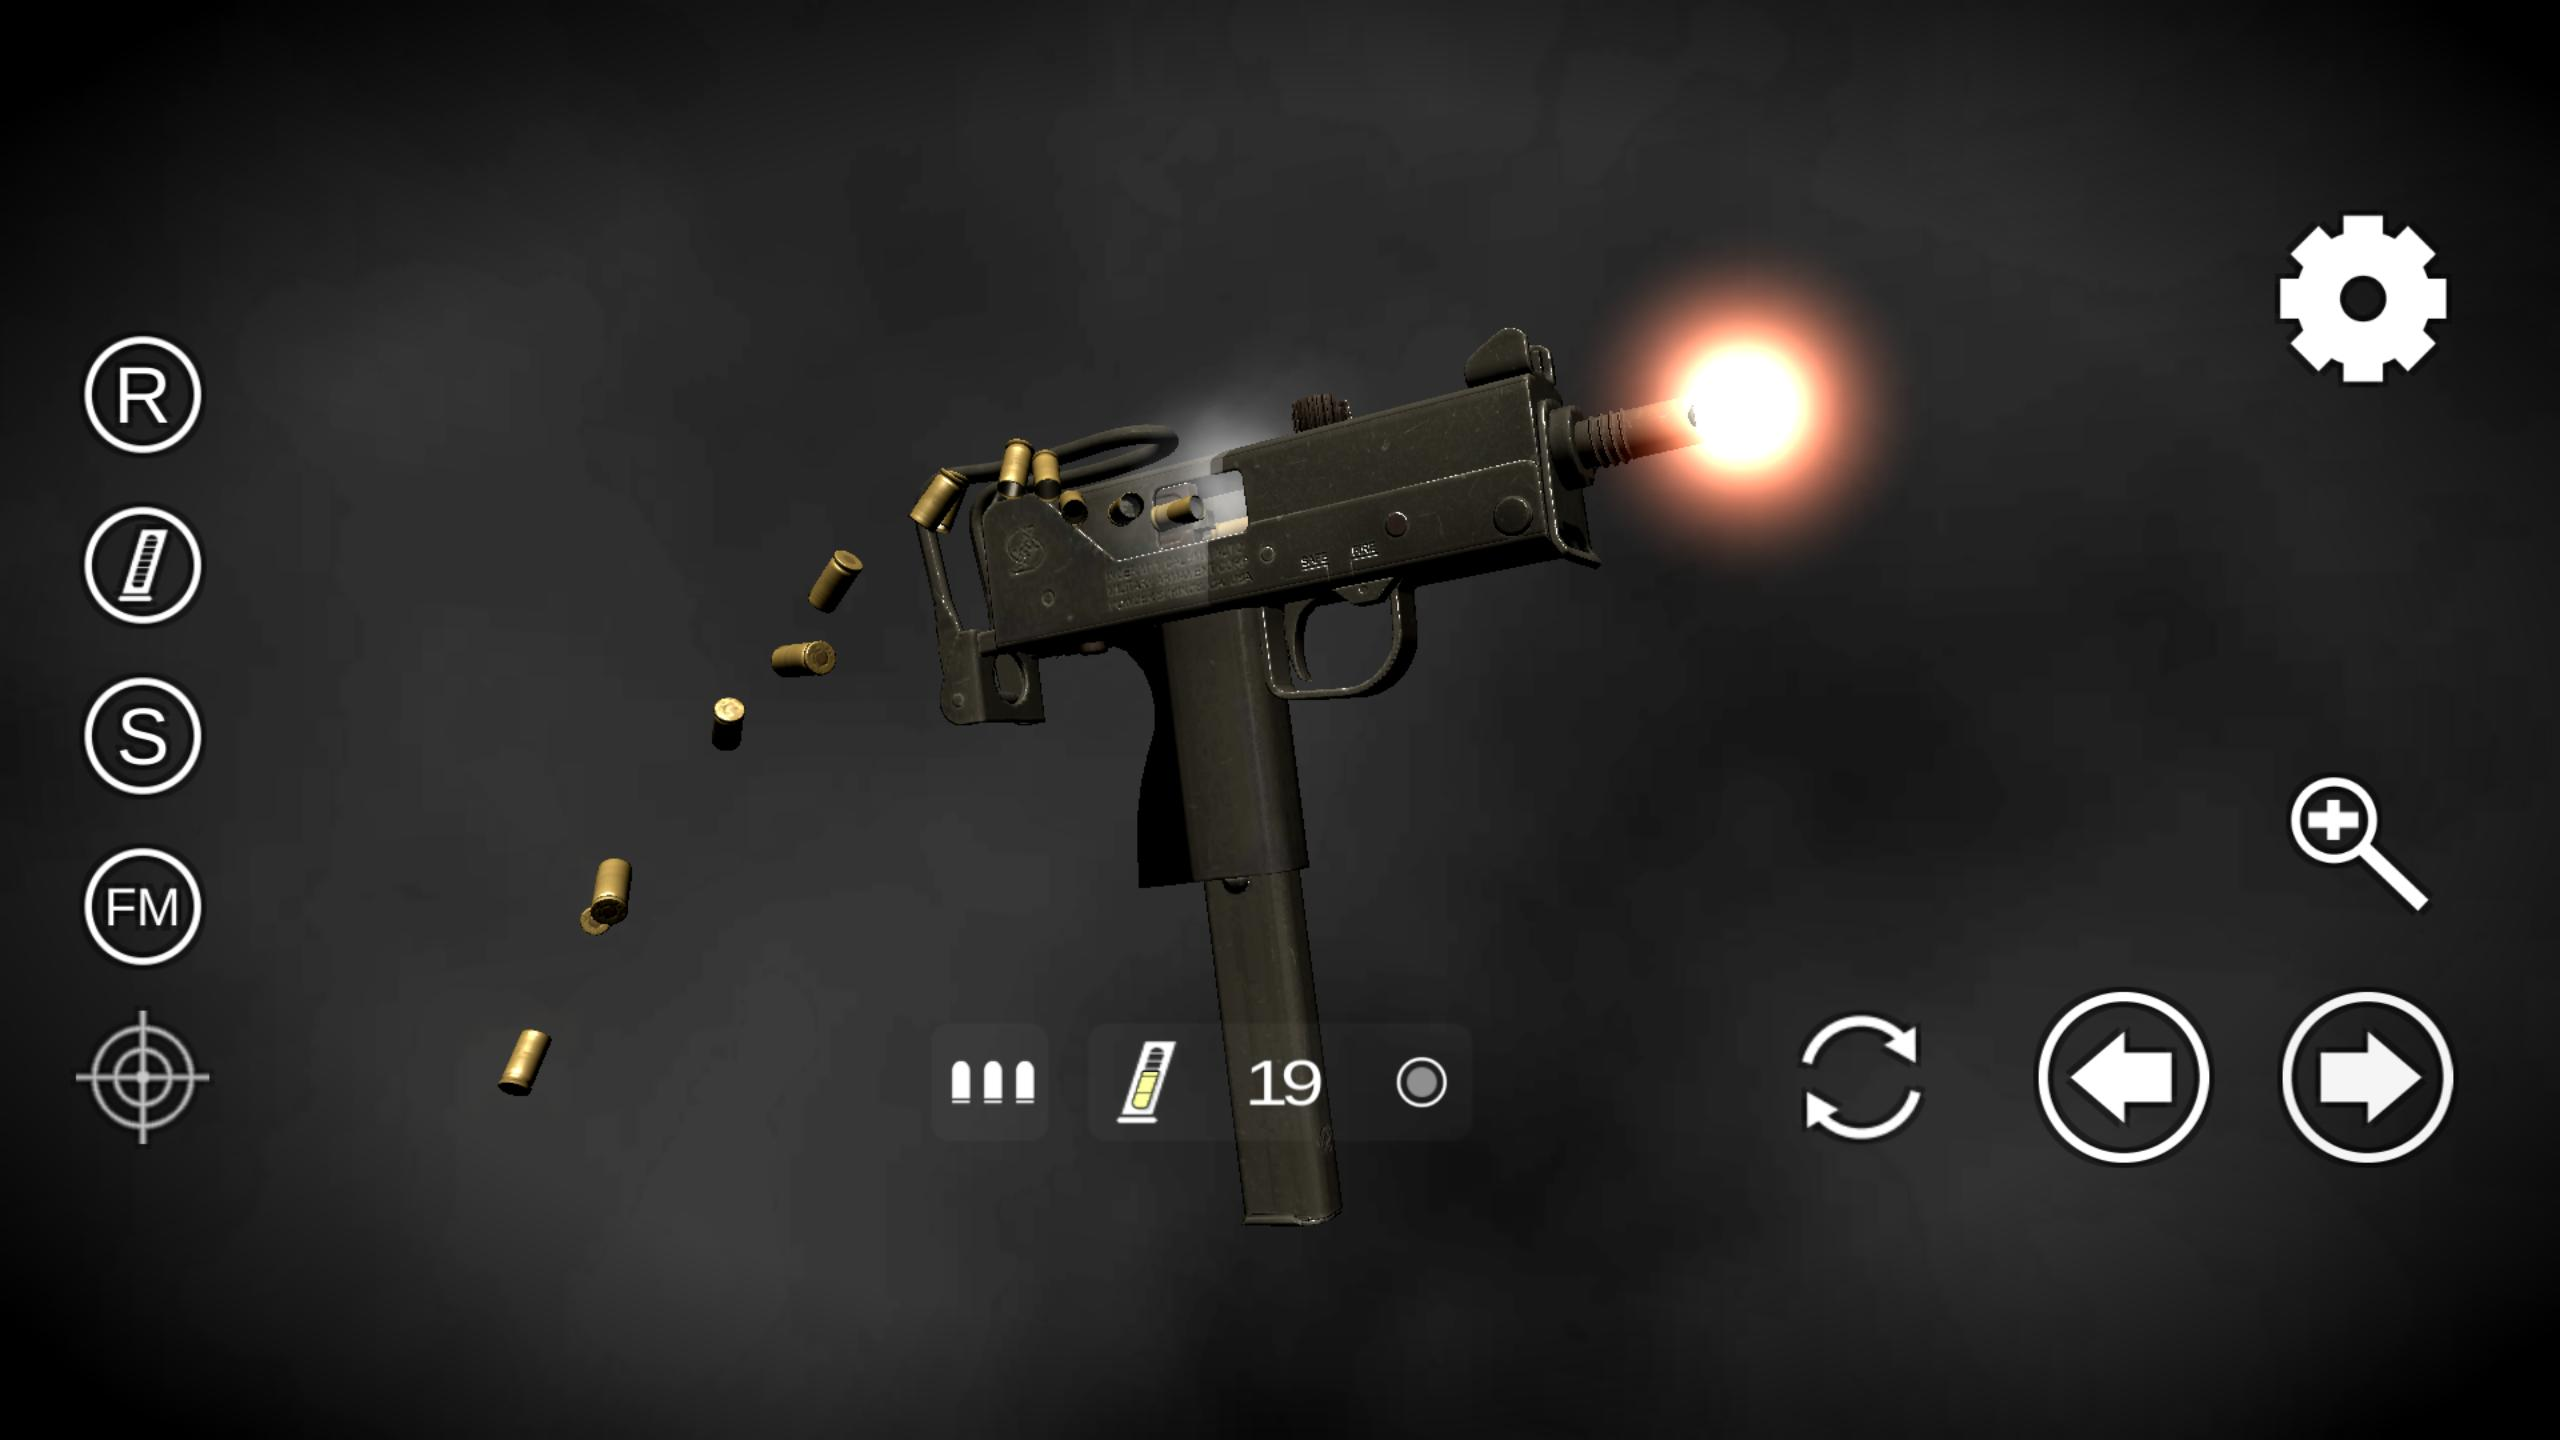 Real Guns & Firearms Simulator 3D for Android - APK Download